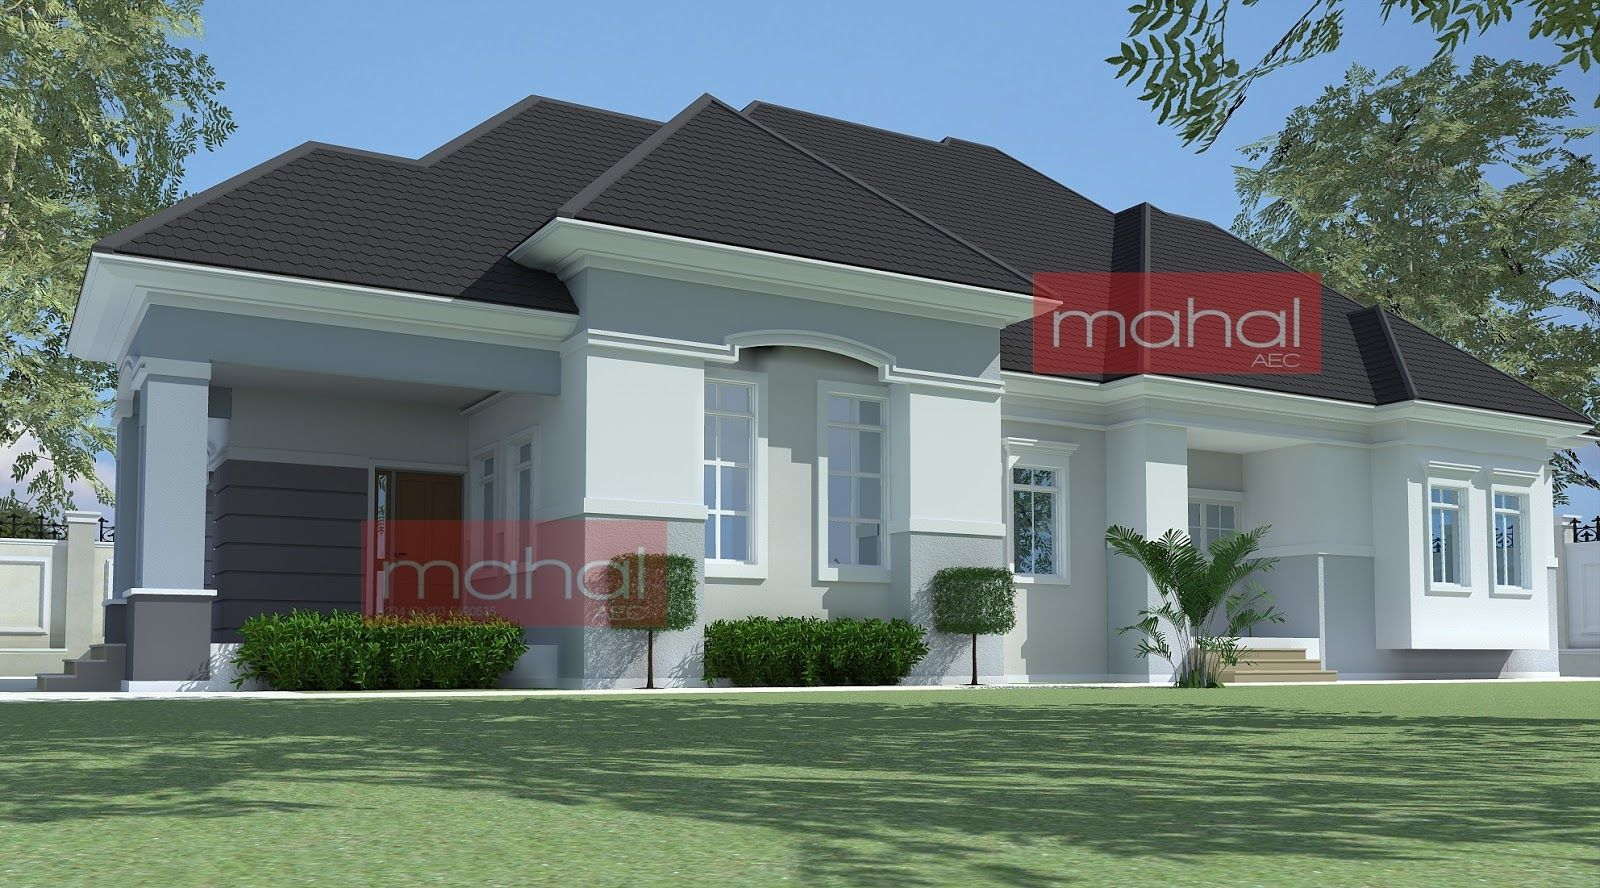 4 Bedroom Bungalow Plan In Nigeria 4 Bedroom Bungalow House Plans Nigerian Design Hot